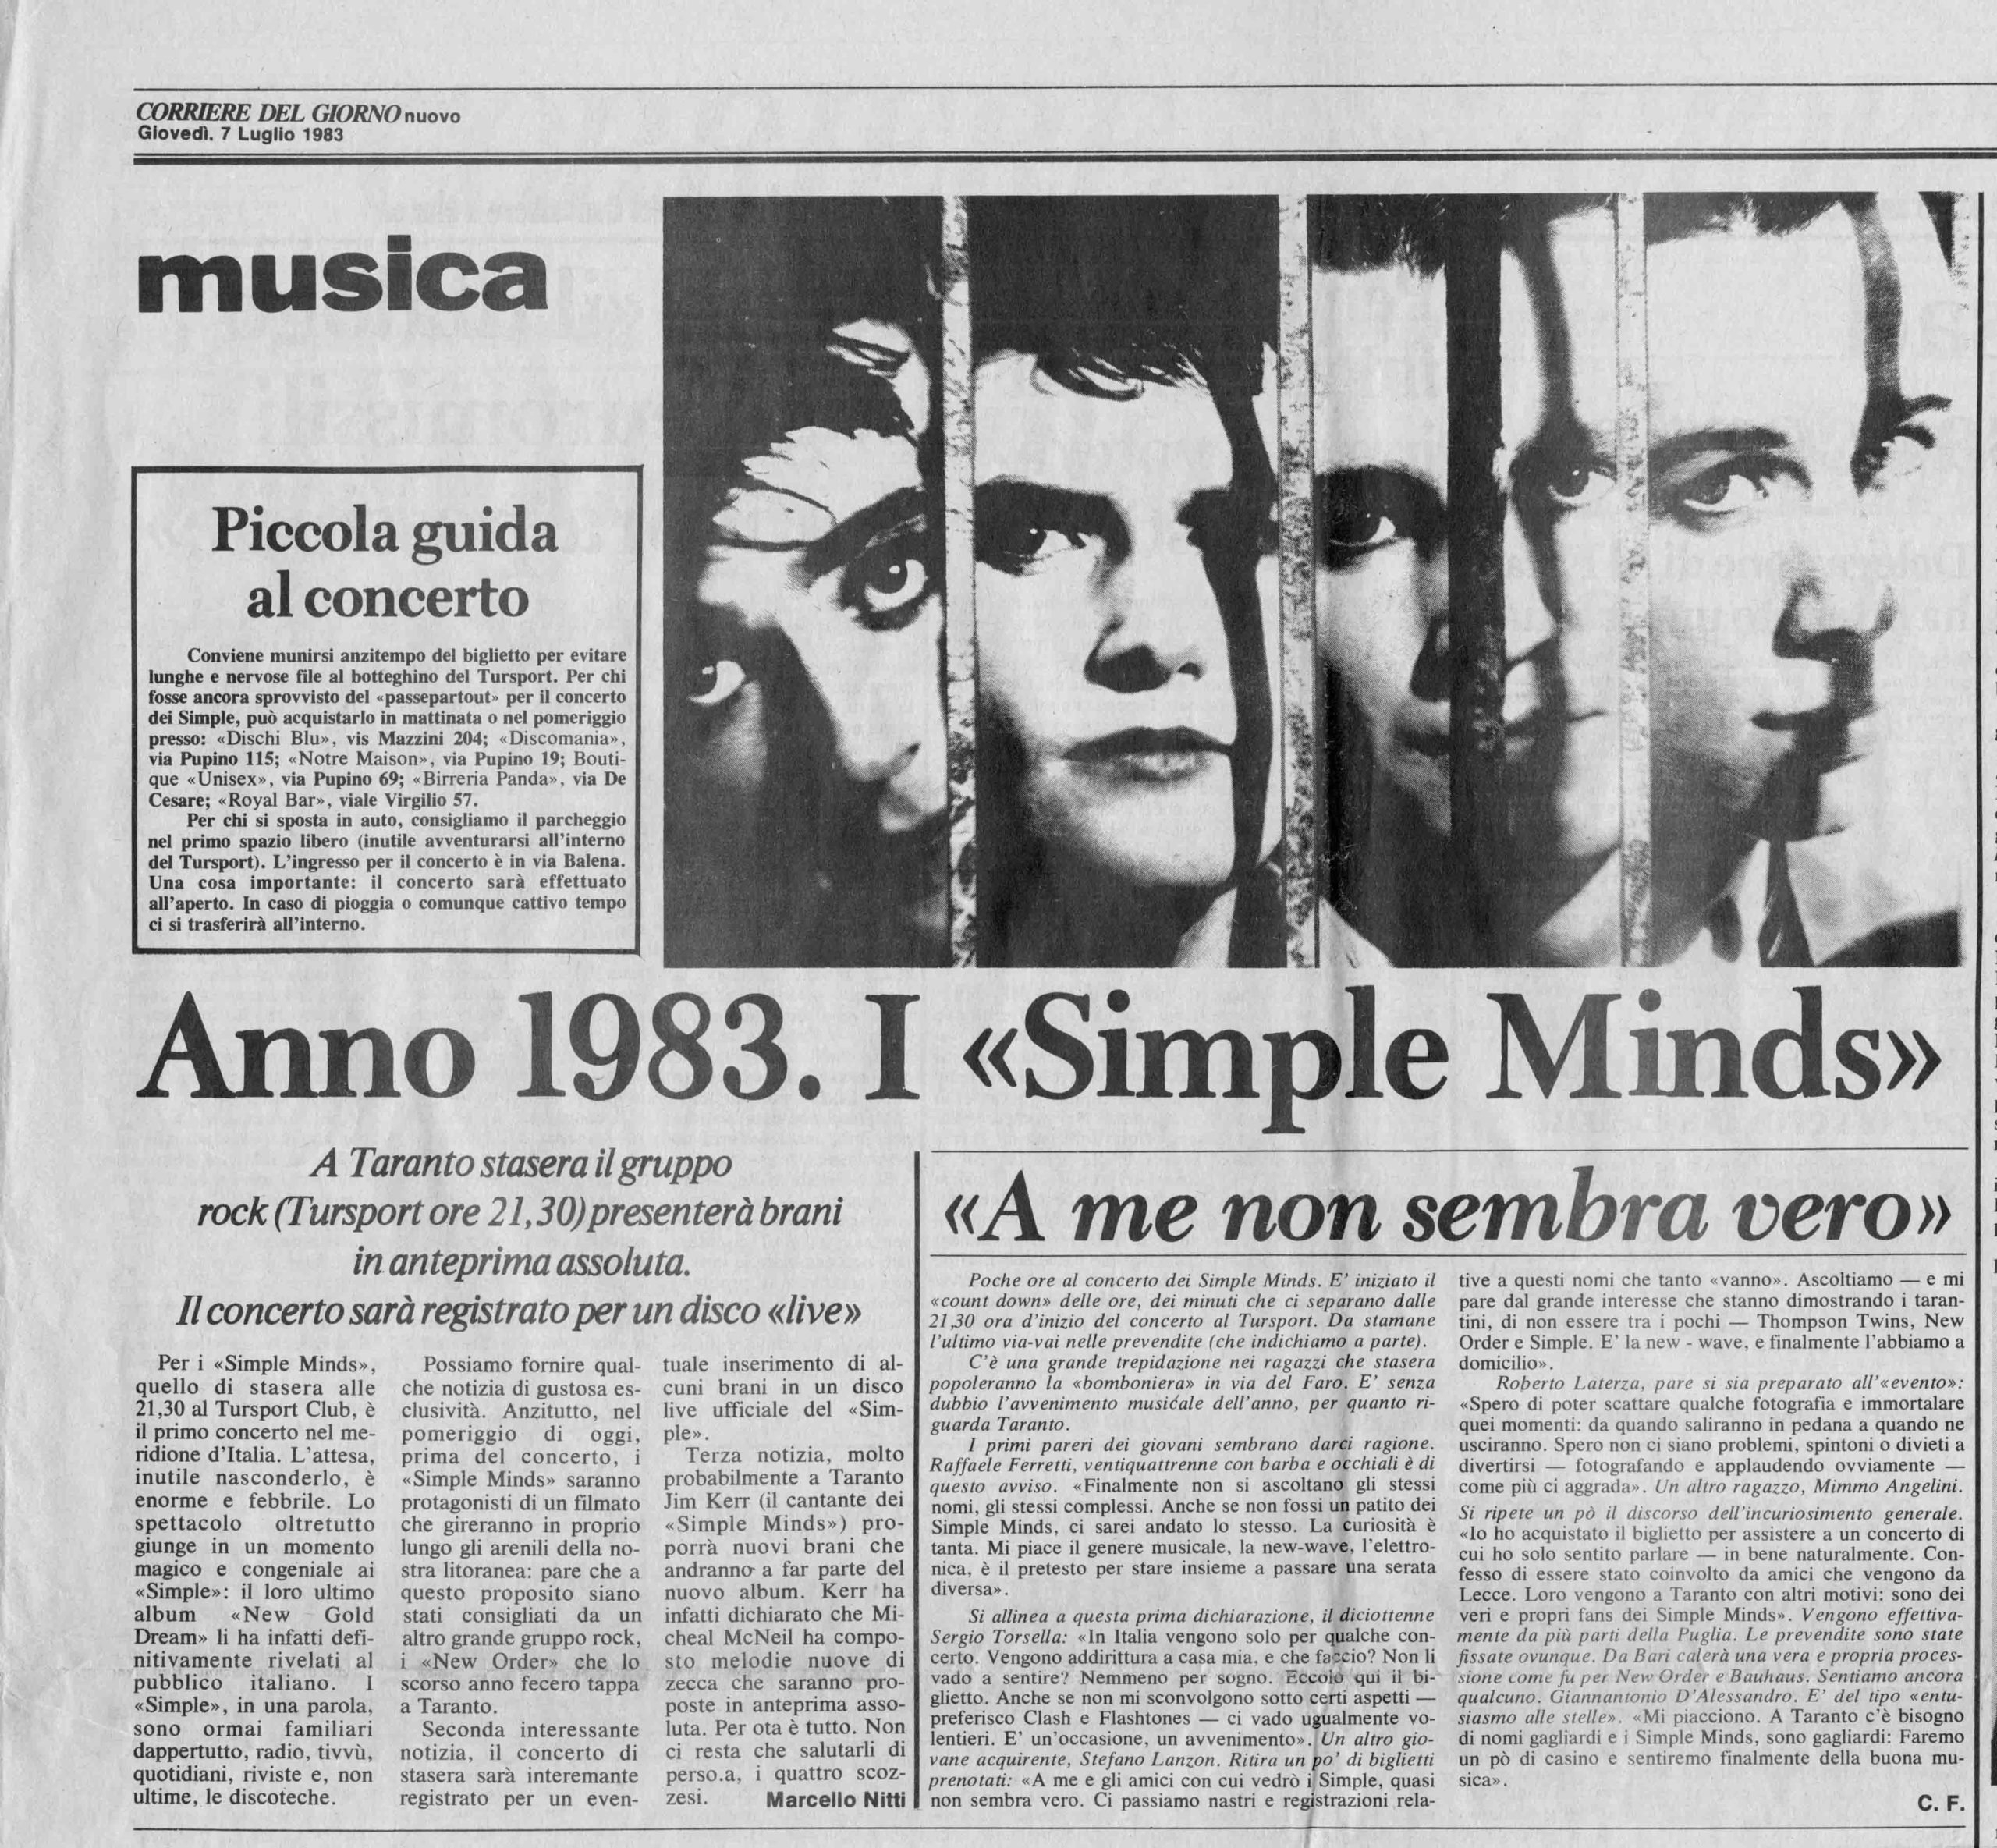 07.07.1983.  Anno 1983: i Simple Minds.